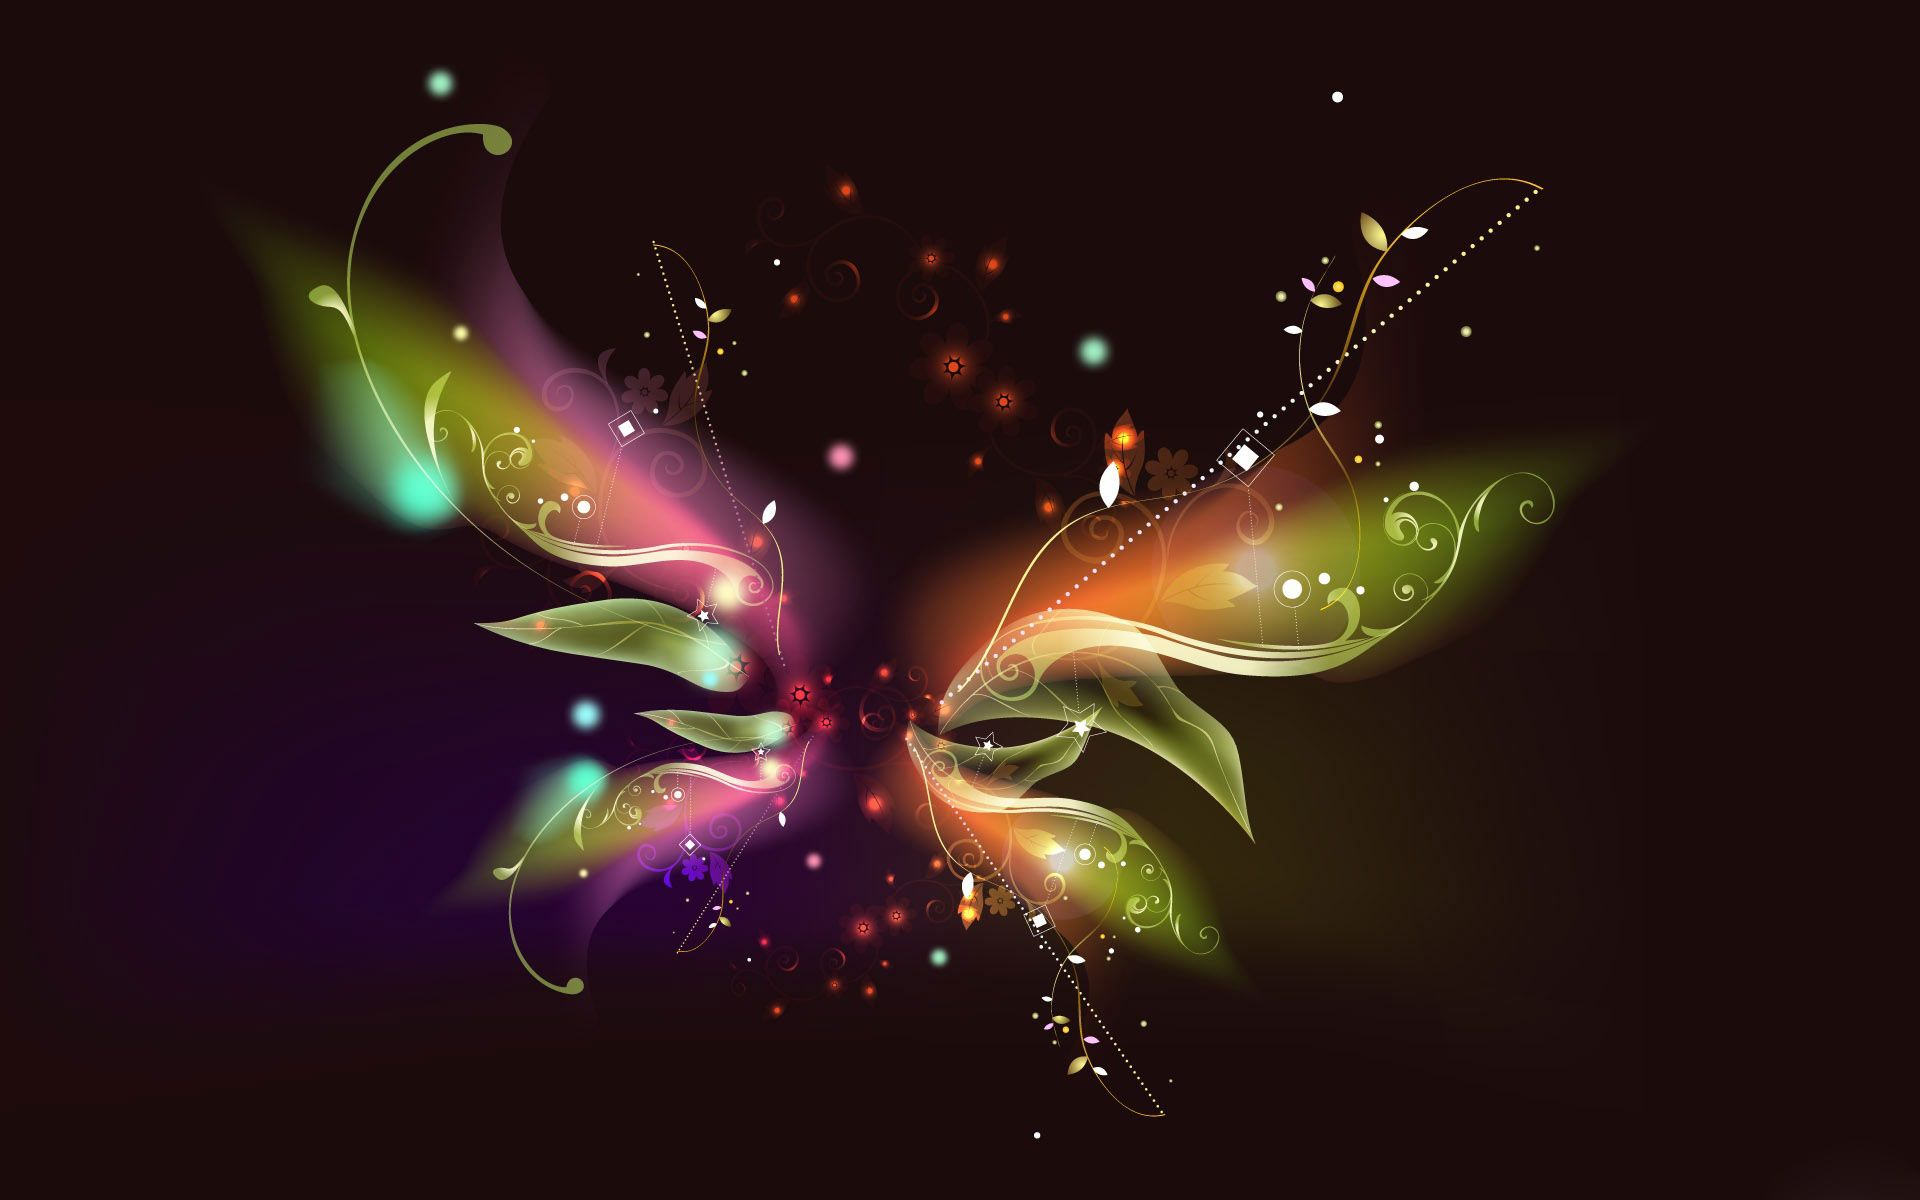 Download free butterfly wallpapers for your mobile phone most